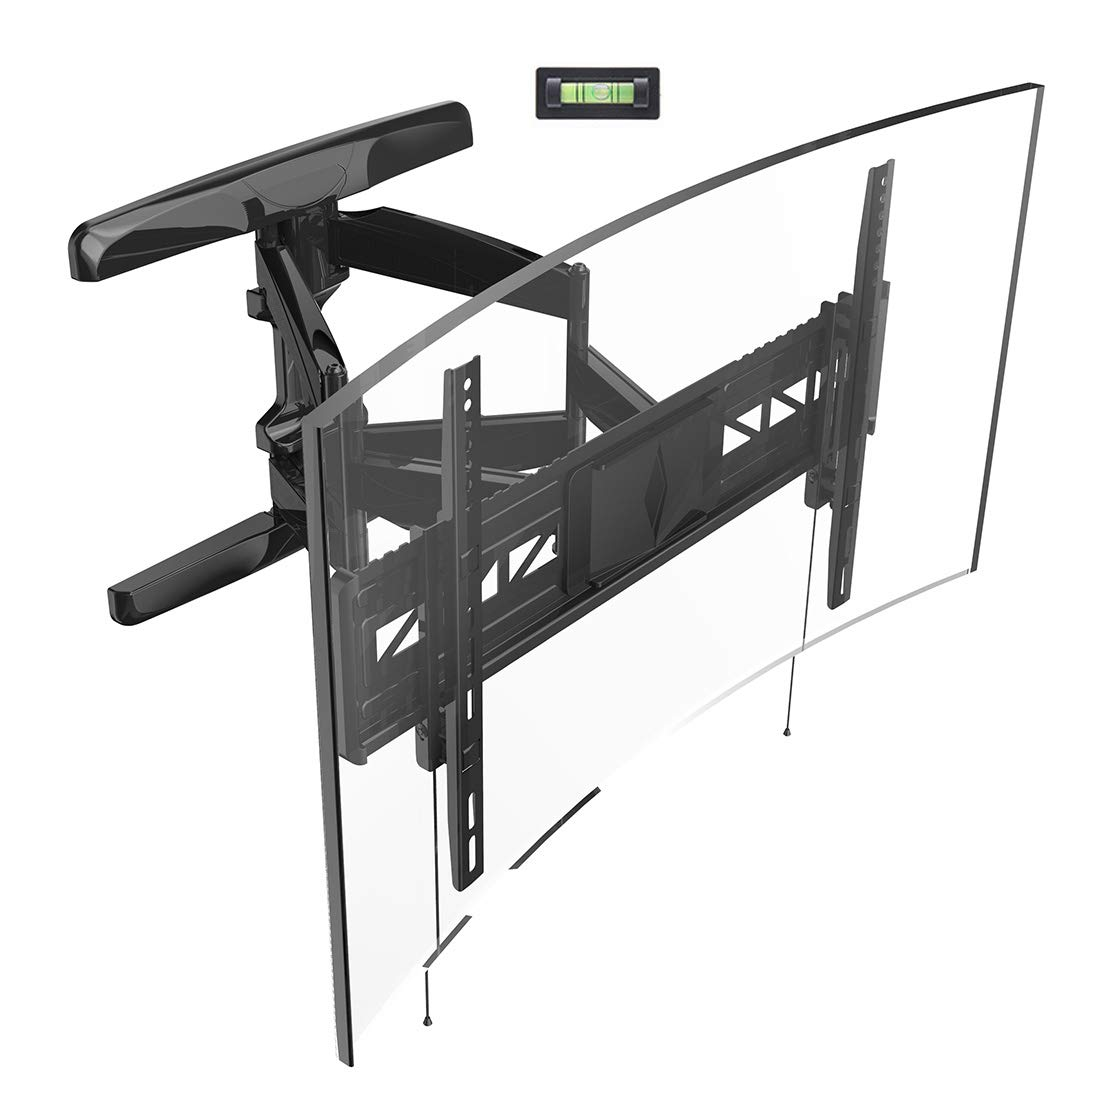 The best TV mounting bracket for curved TVs.